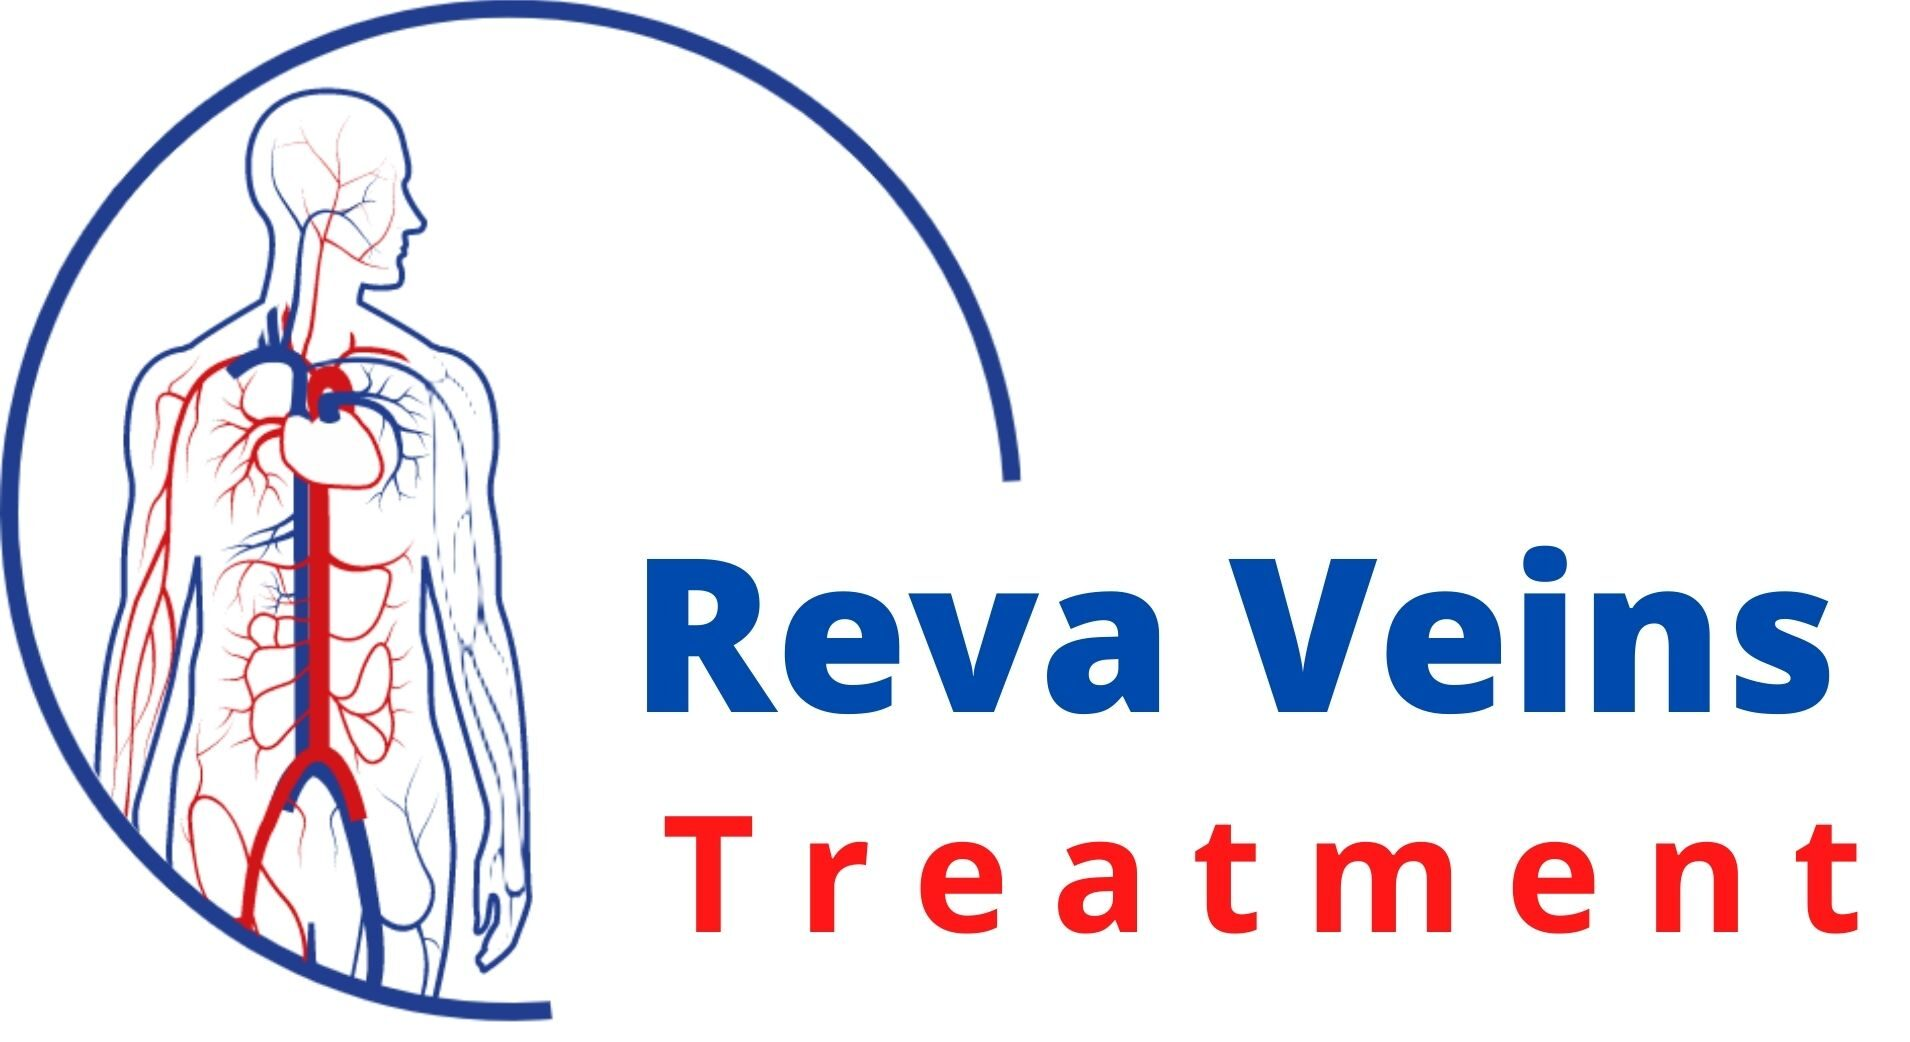 Reva veins treatment, Reva Veins treatment